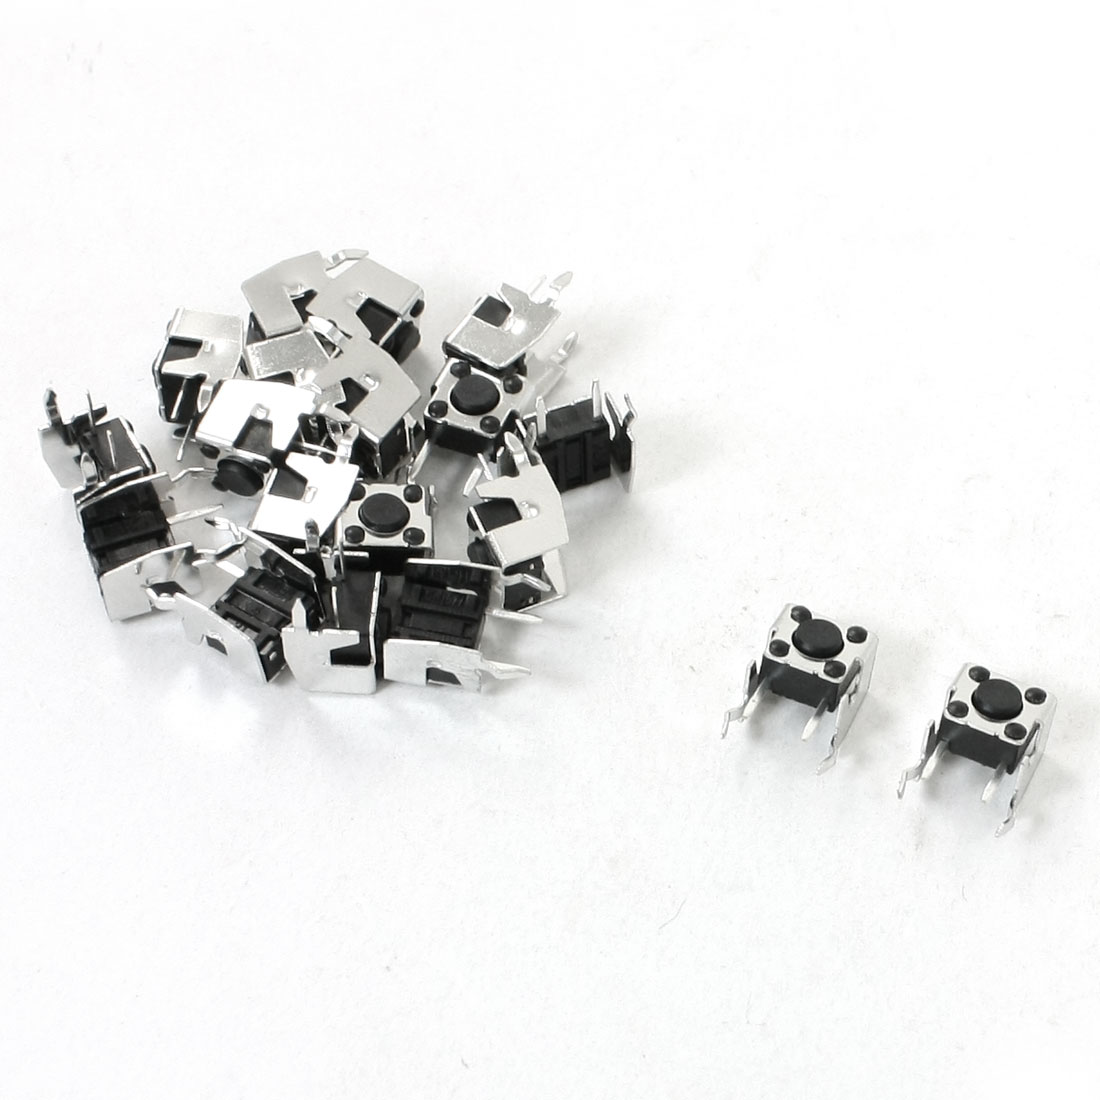 19 Pcs 6x6x4mm Right Angle Momentary DIP Tactile Tact Push Button Switch